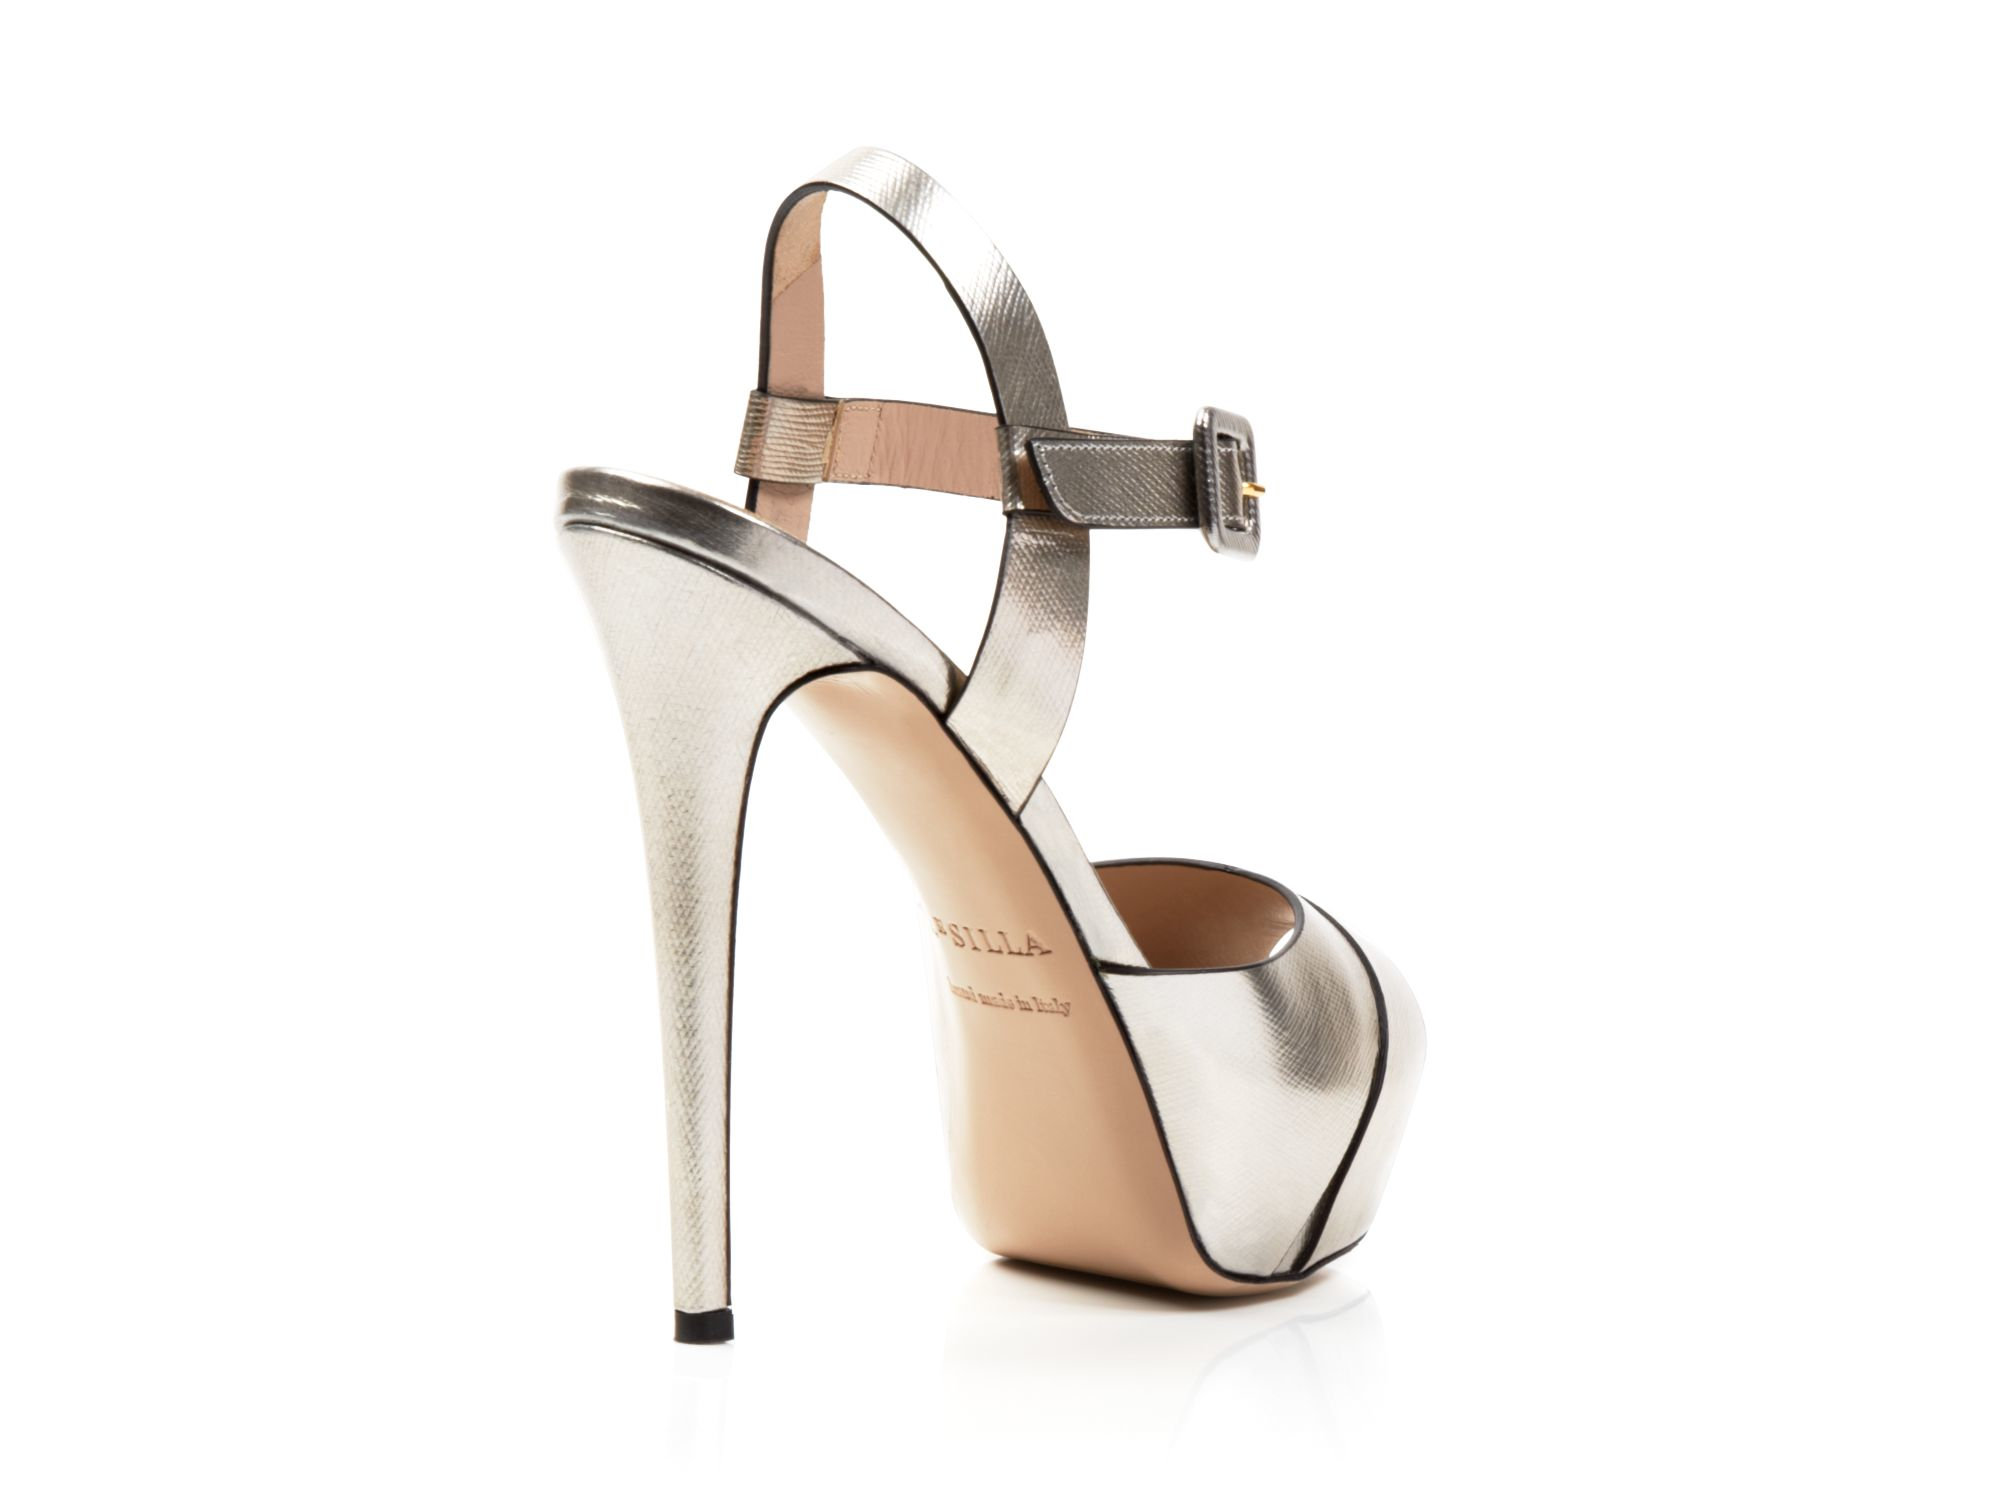 strappy sandals - Metallic Le Silla gSLhqbF